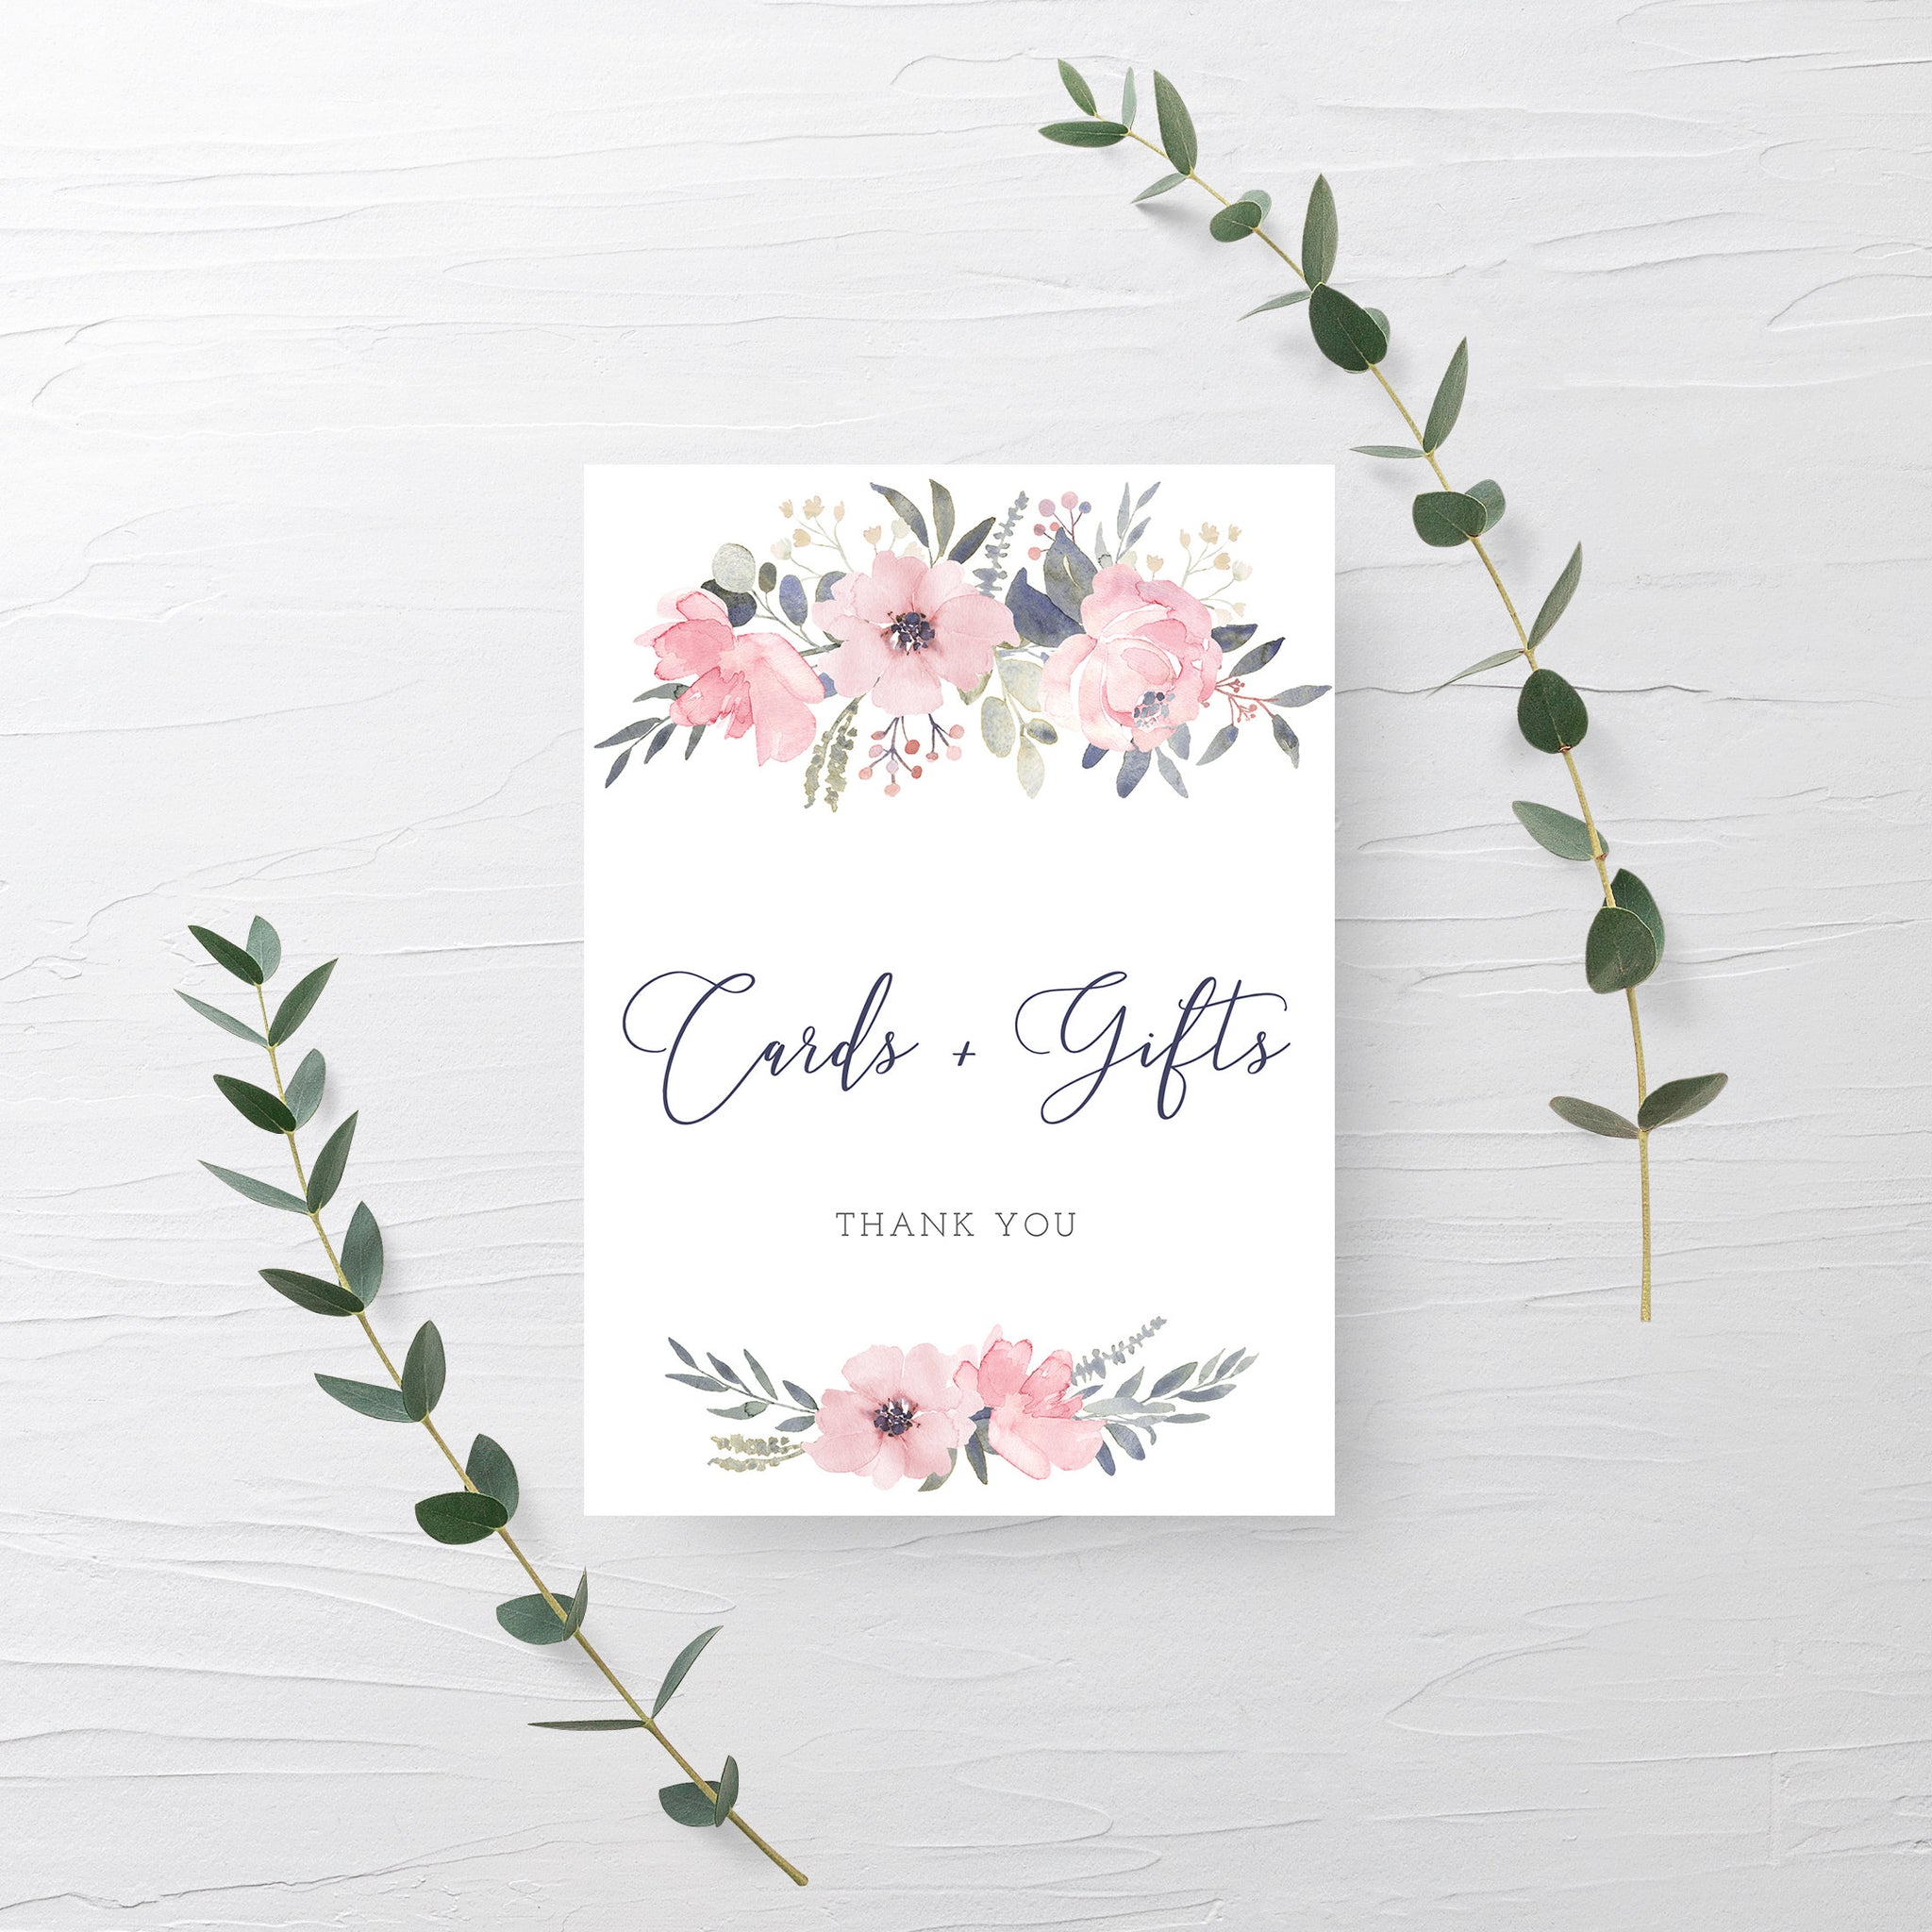 Navy and Blush Floral Cards and Gifts Printable Sign INSTANT DOWNLOAD, Bridal Shower, Baby Shower, Wedding Decorations and Supplies - NB100 - @PlumPolkaDot